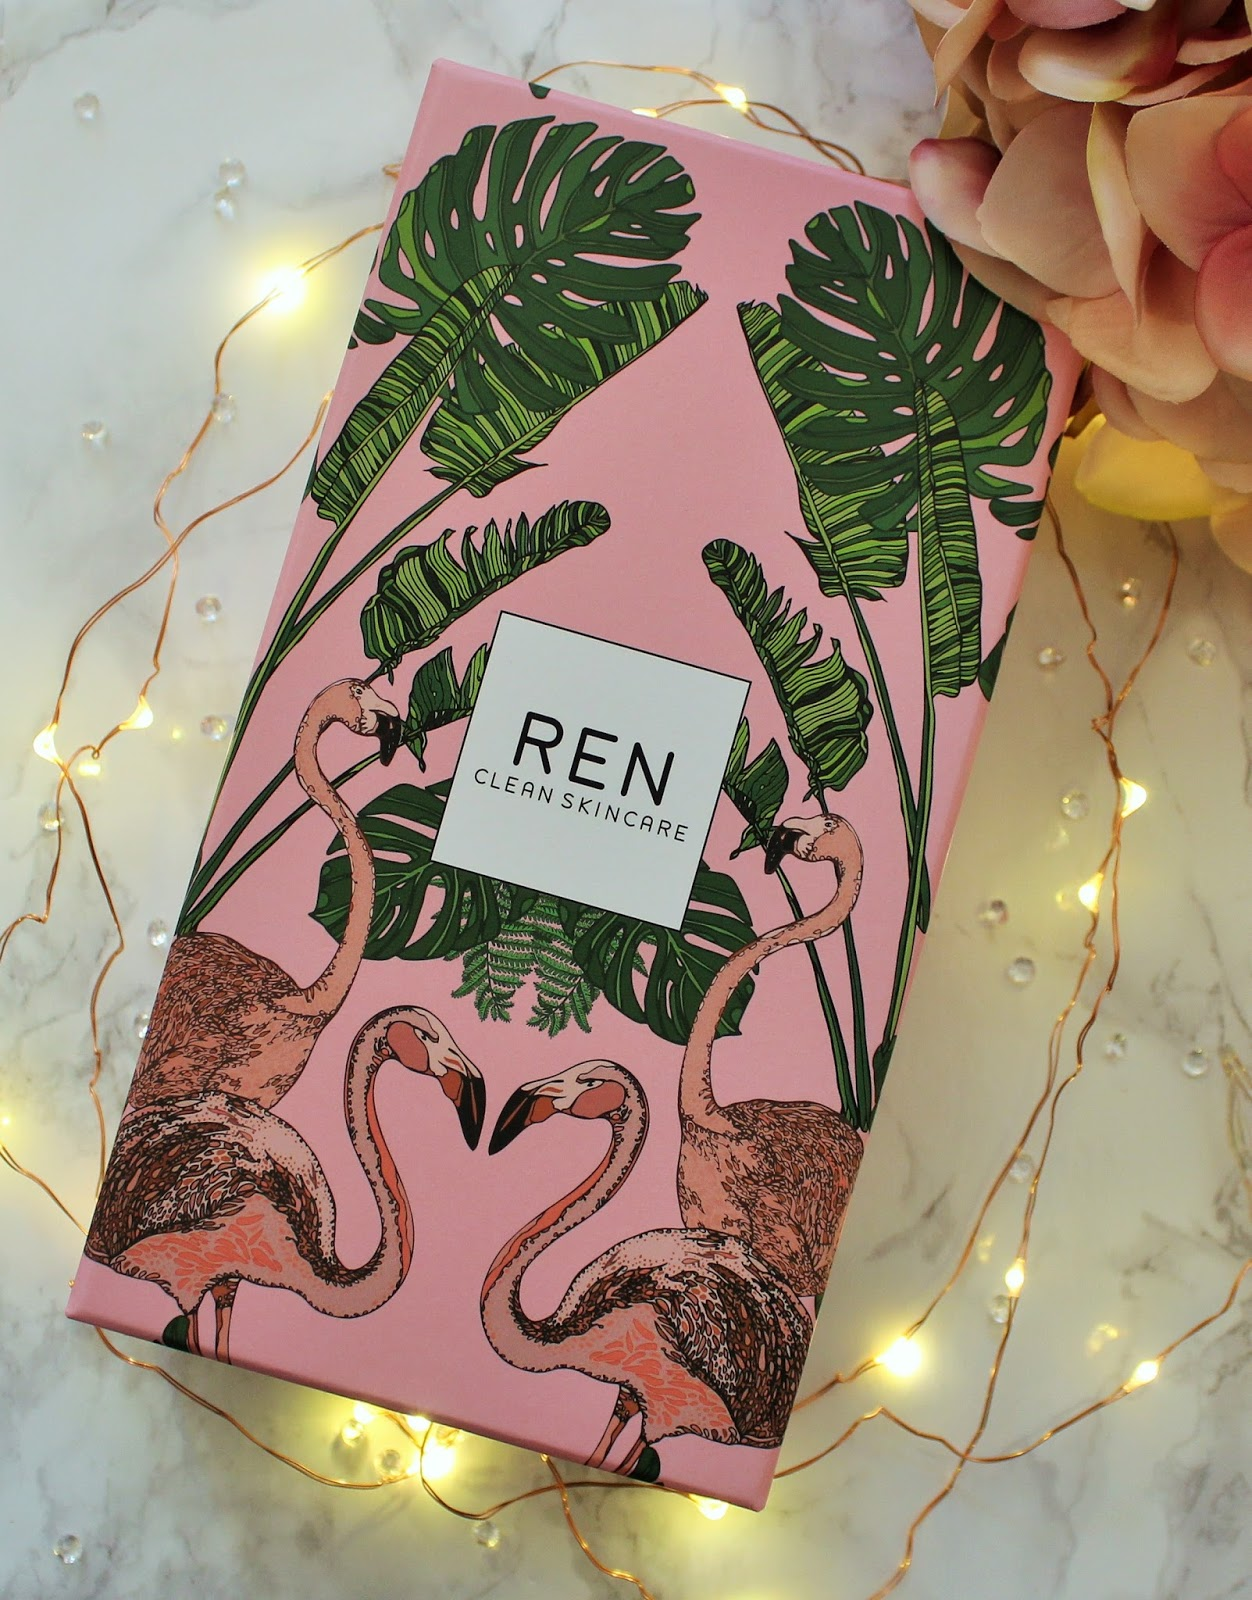 New In From Ren Clean Skincare - & Now To Sleep Pillow Spray Plus Christmas 2017 Gifts - 4